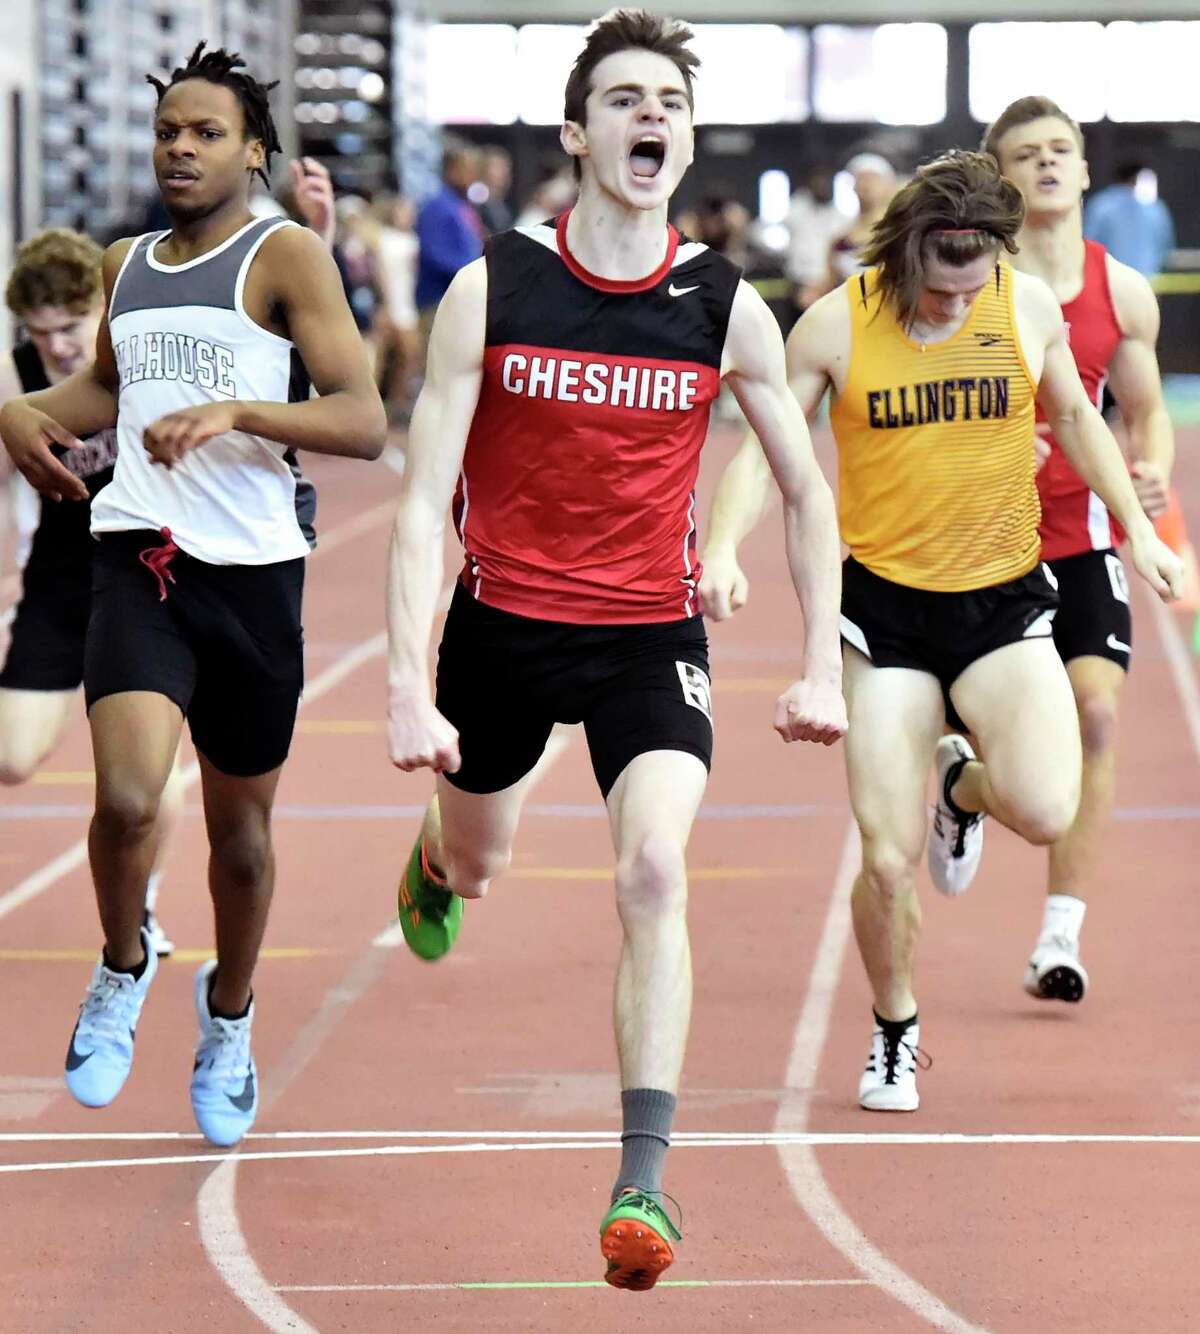 New Haven Connecticut - February 22, 2020: Ryan Farrell of Cheshire H.S., wins the the 600-meter run, center, as Talib McBride of Hillhouse H.S. places second, left, and Jack Olender of Ellington H.S. places third during the CIAC State Open Indoor Track Championship Saturday at the Floyd Little Athletic Center in New Haven.